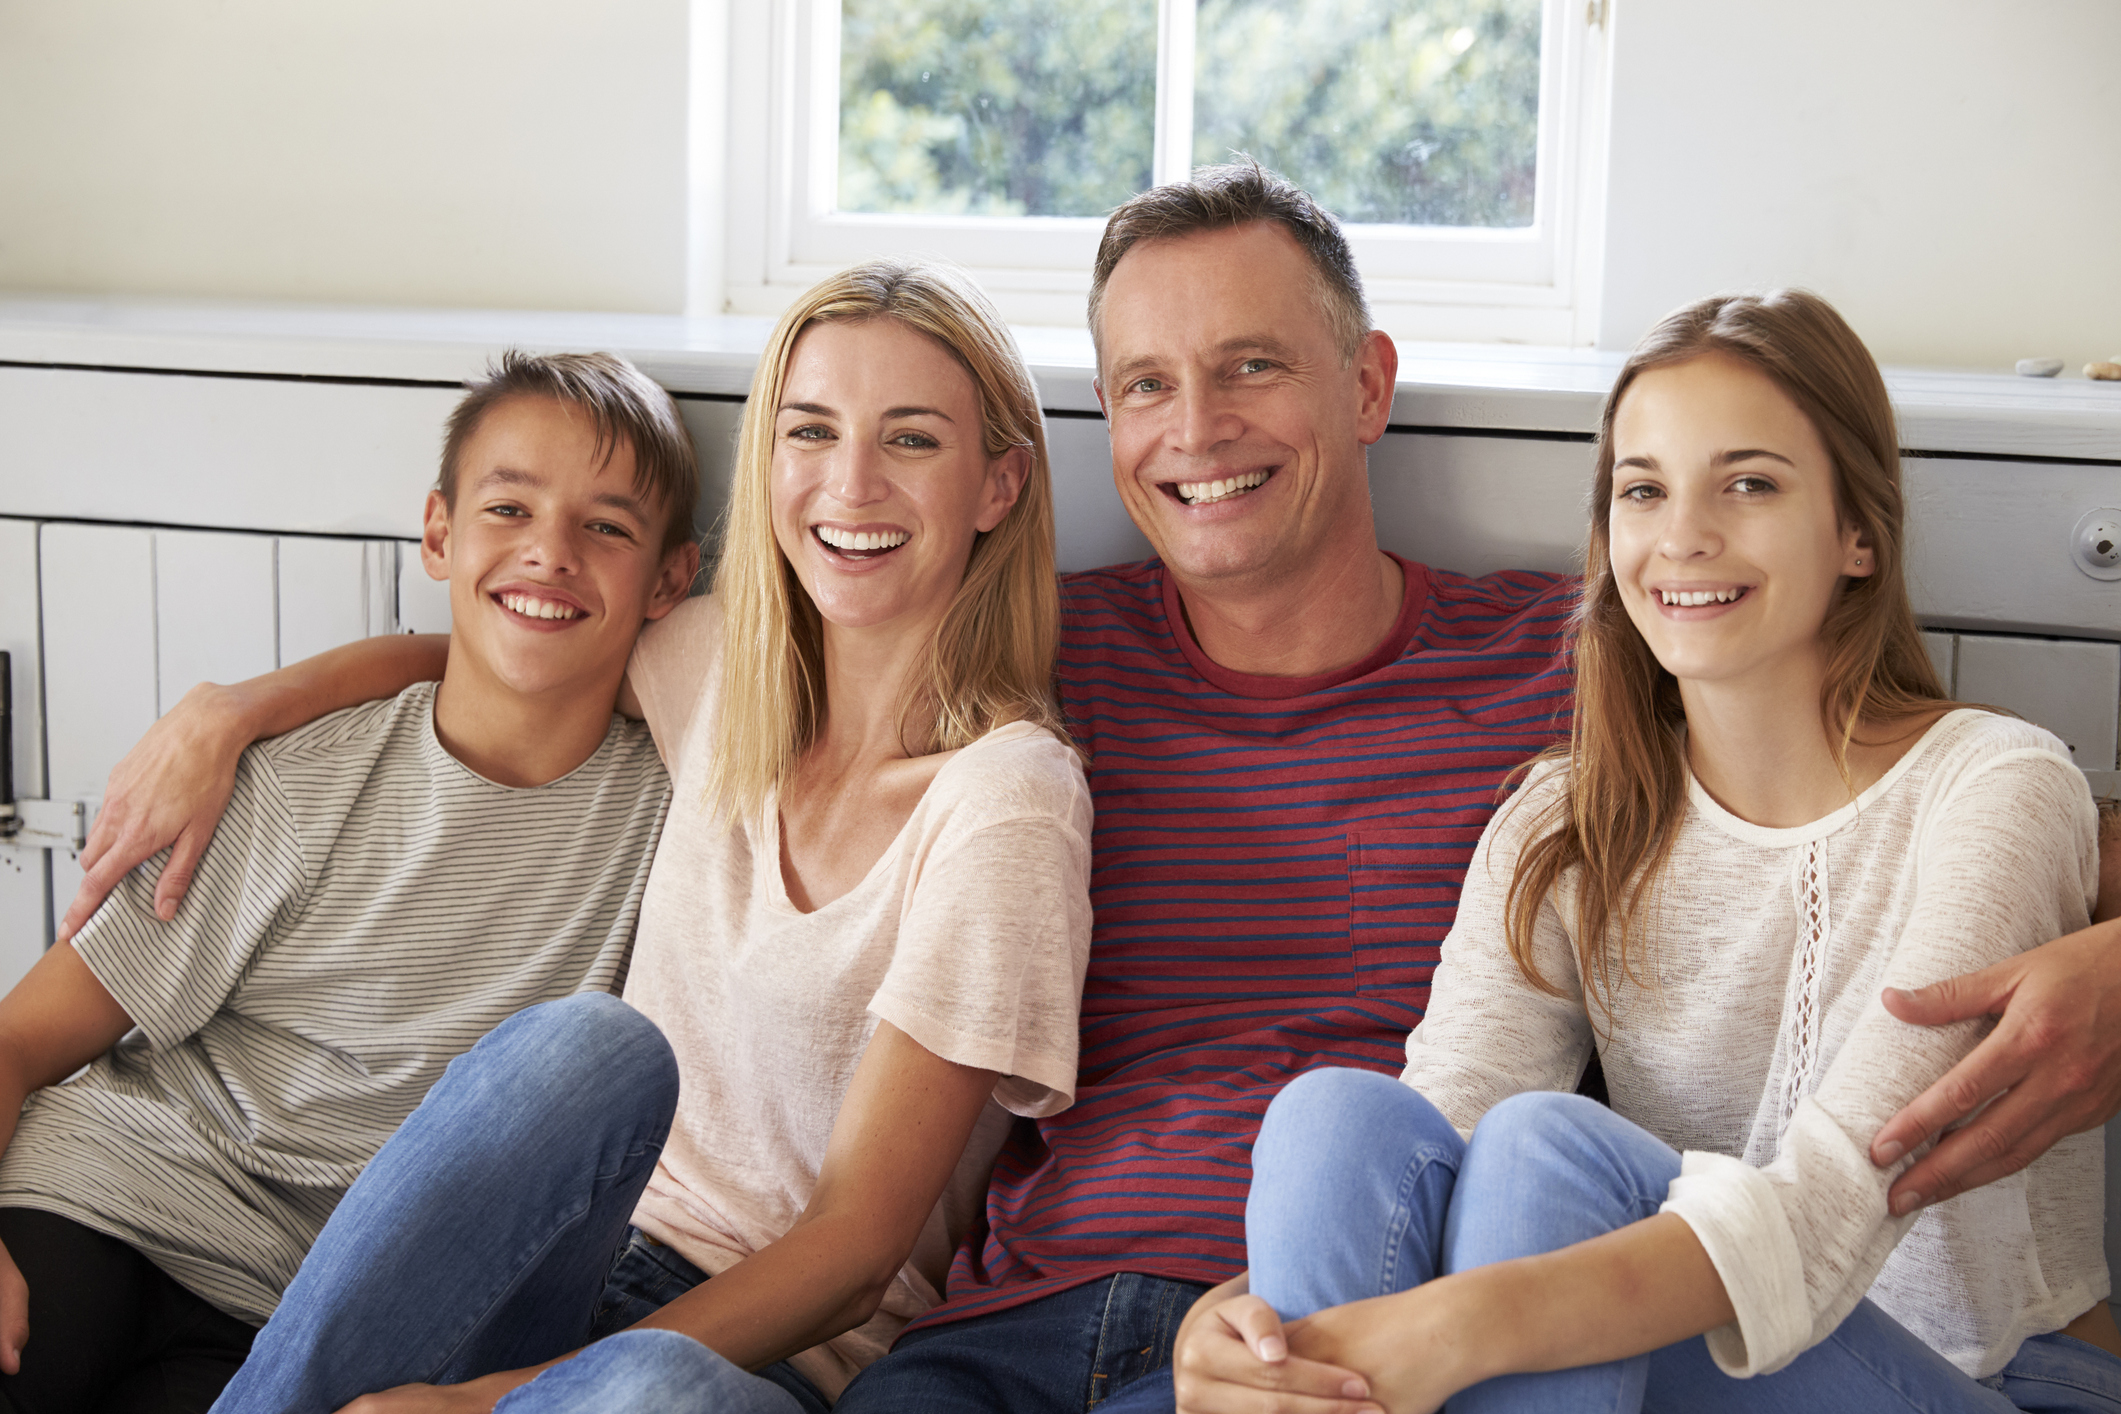 Support to help you reduce your stress as a parent and make positive changes in your family